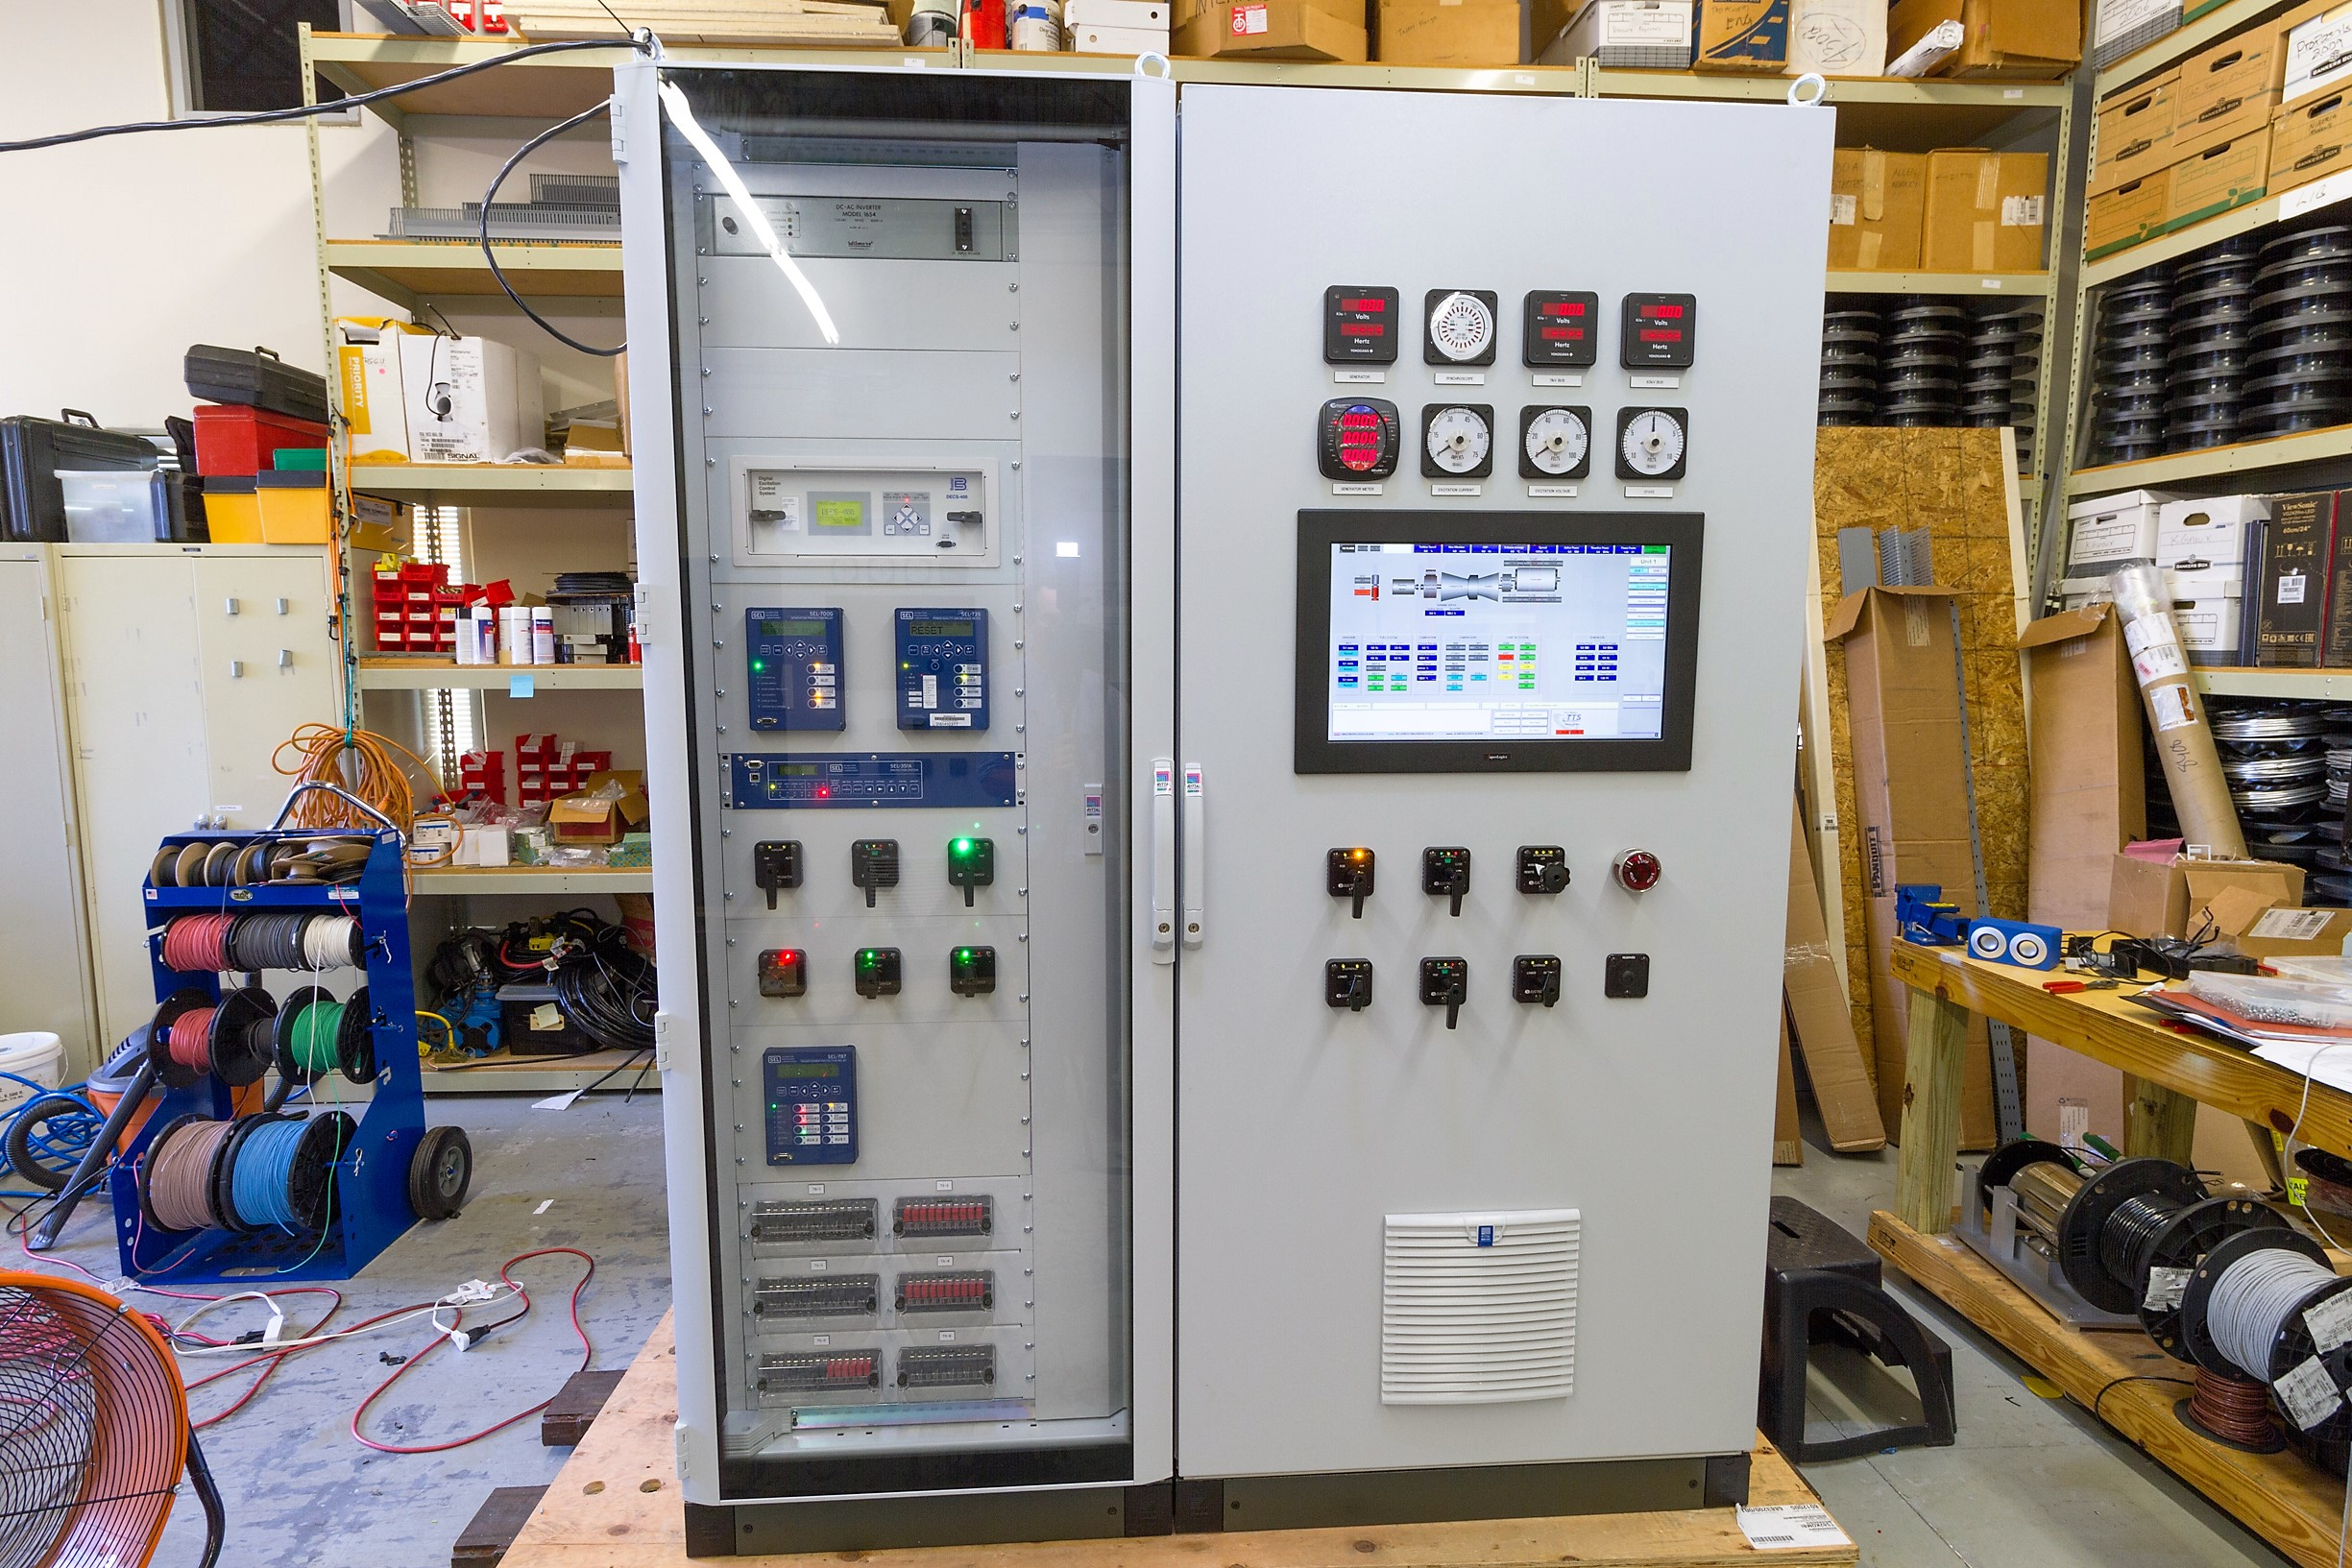 Industrial Automation Display